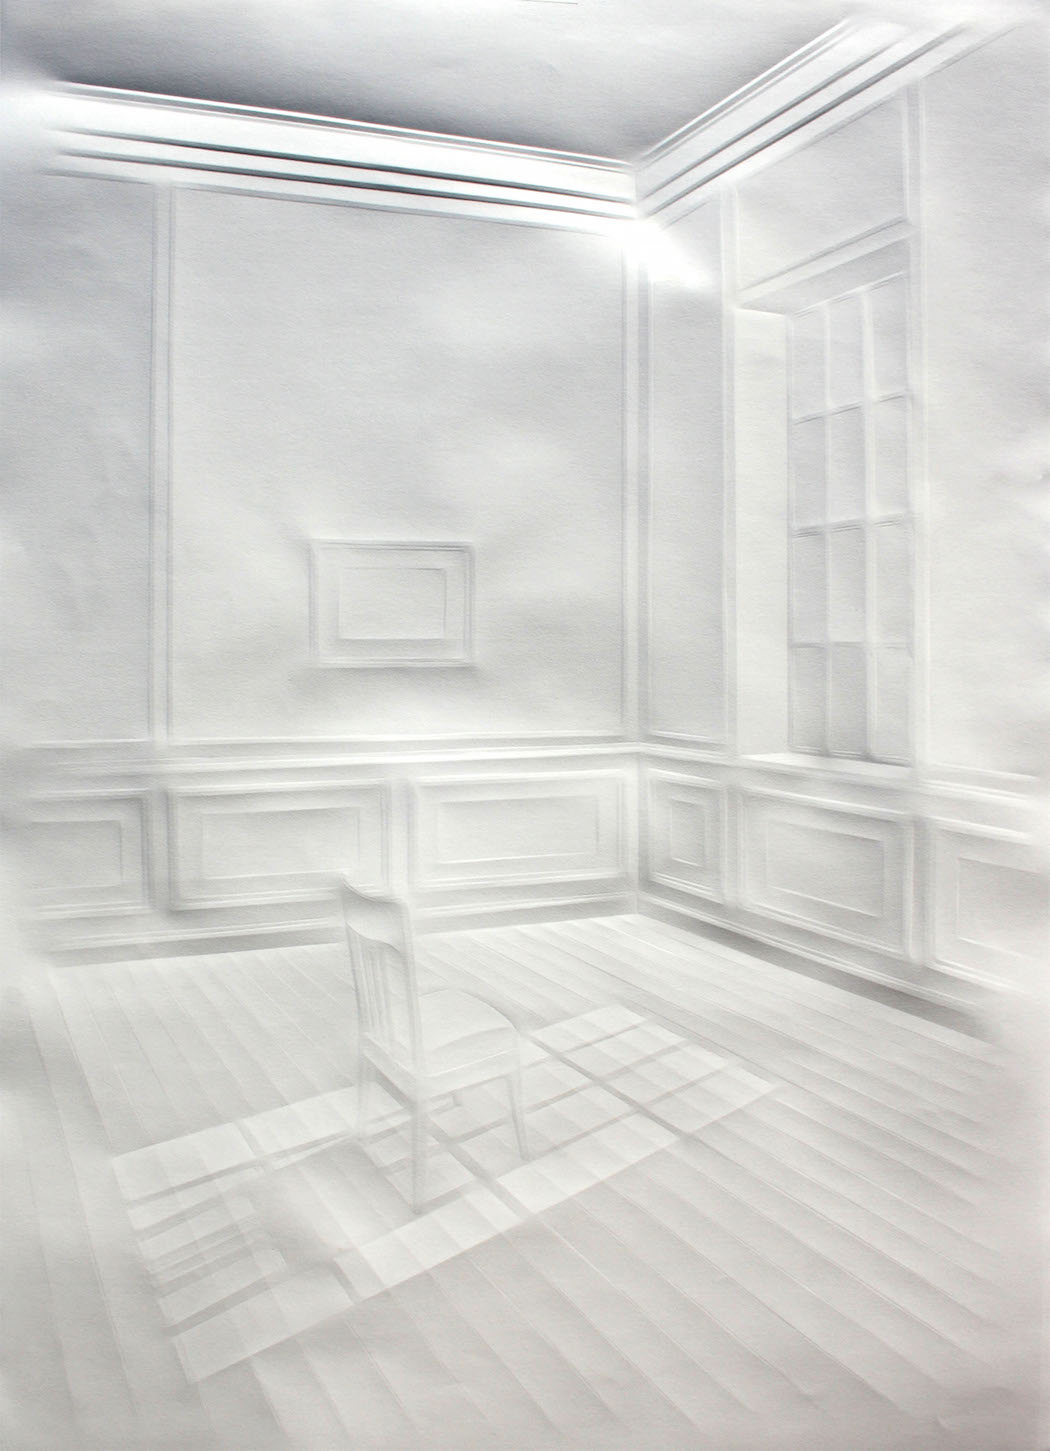 simonschubert(Light on chair),70x50cm,2014